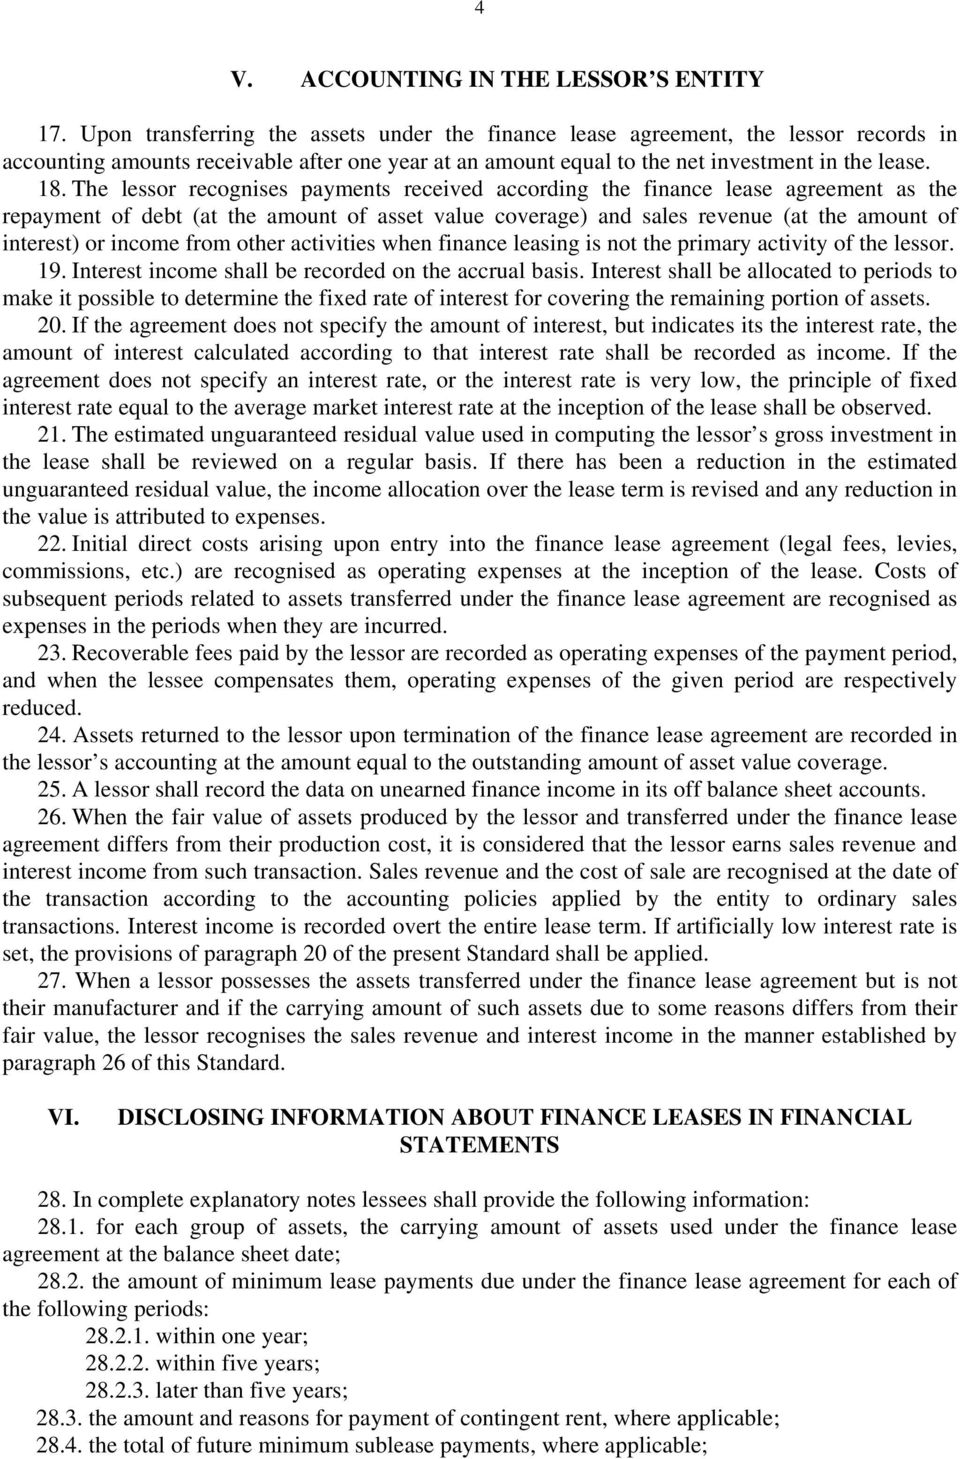 The lessor recognises payments received according the finance lease agreement as the repayment of debt (at the amount of asset value coverage) and sales revenue (at the amount of interest) or income